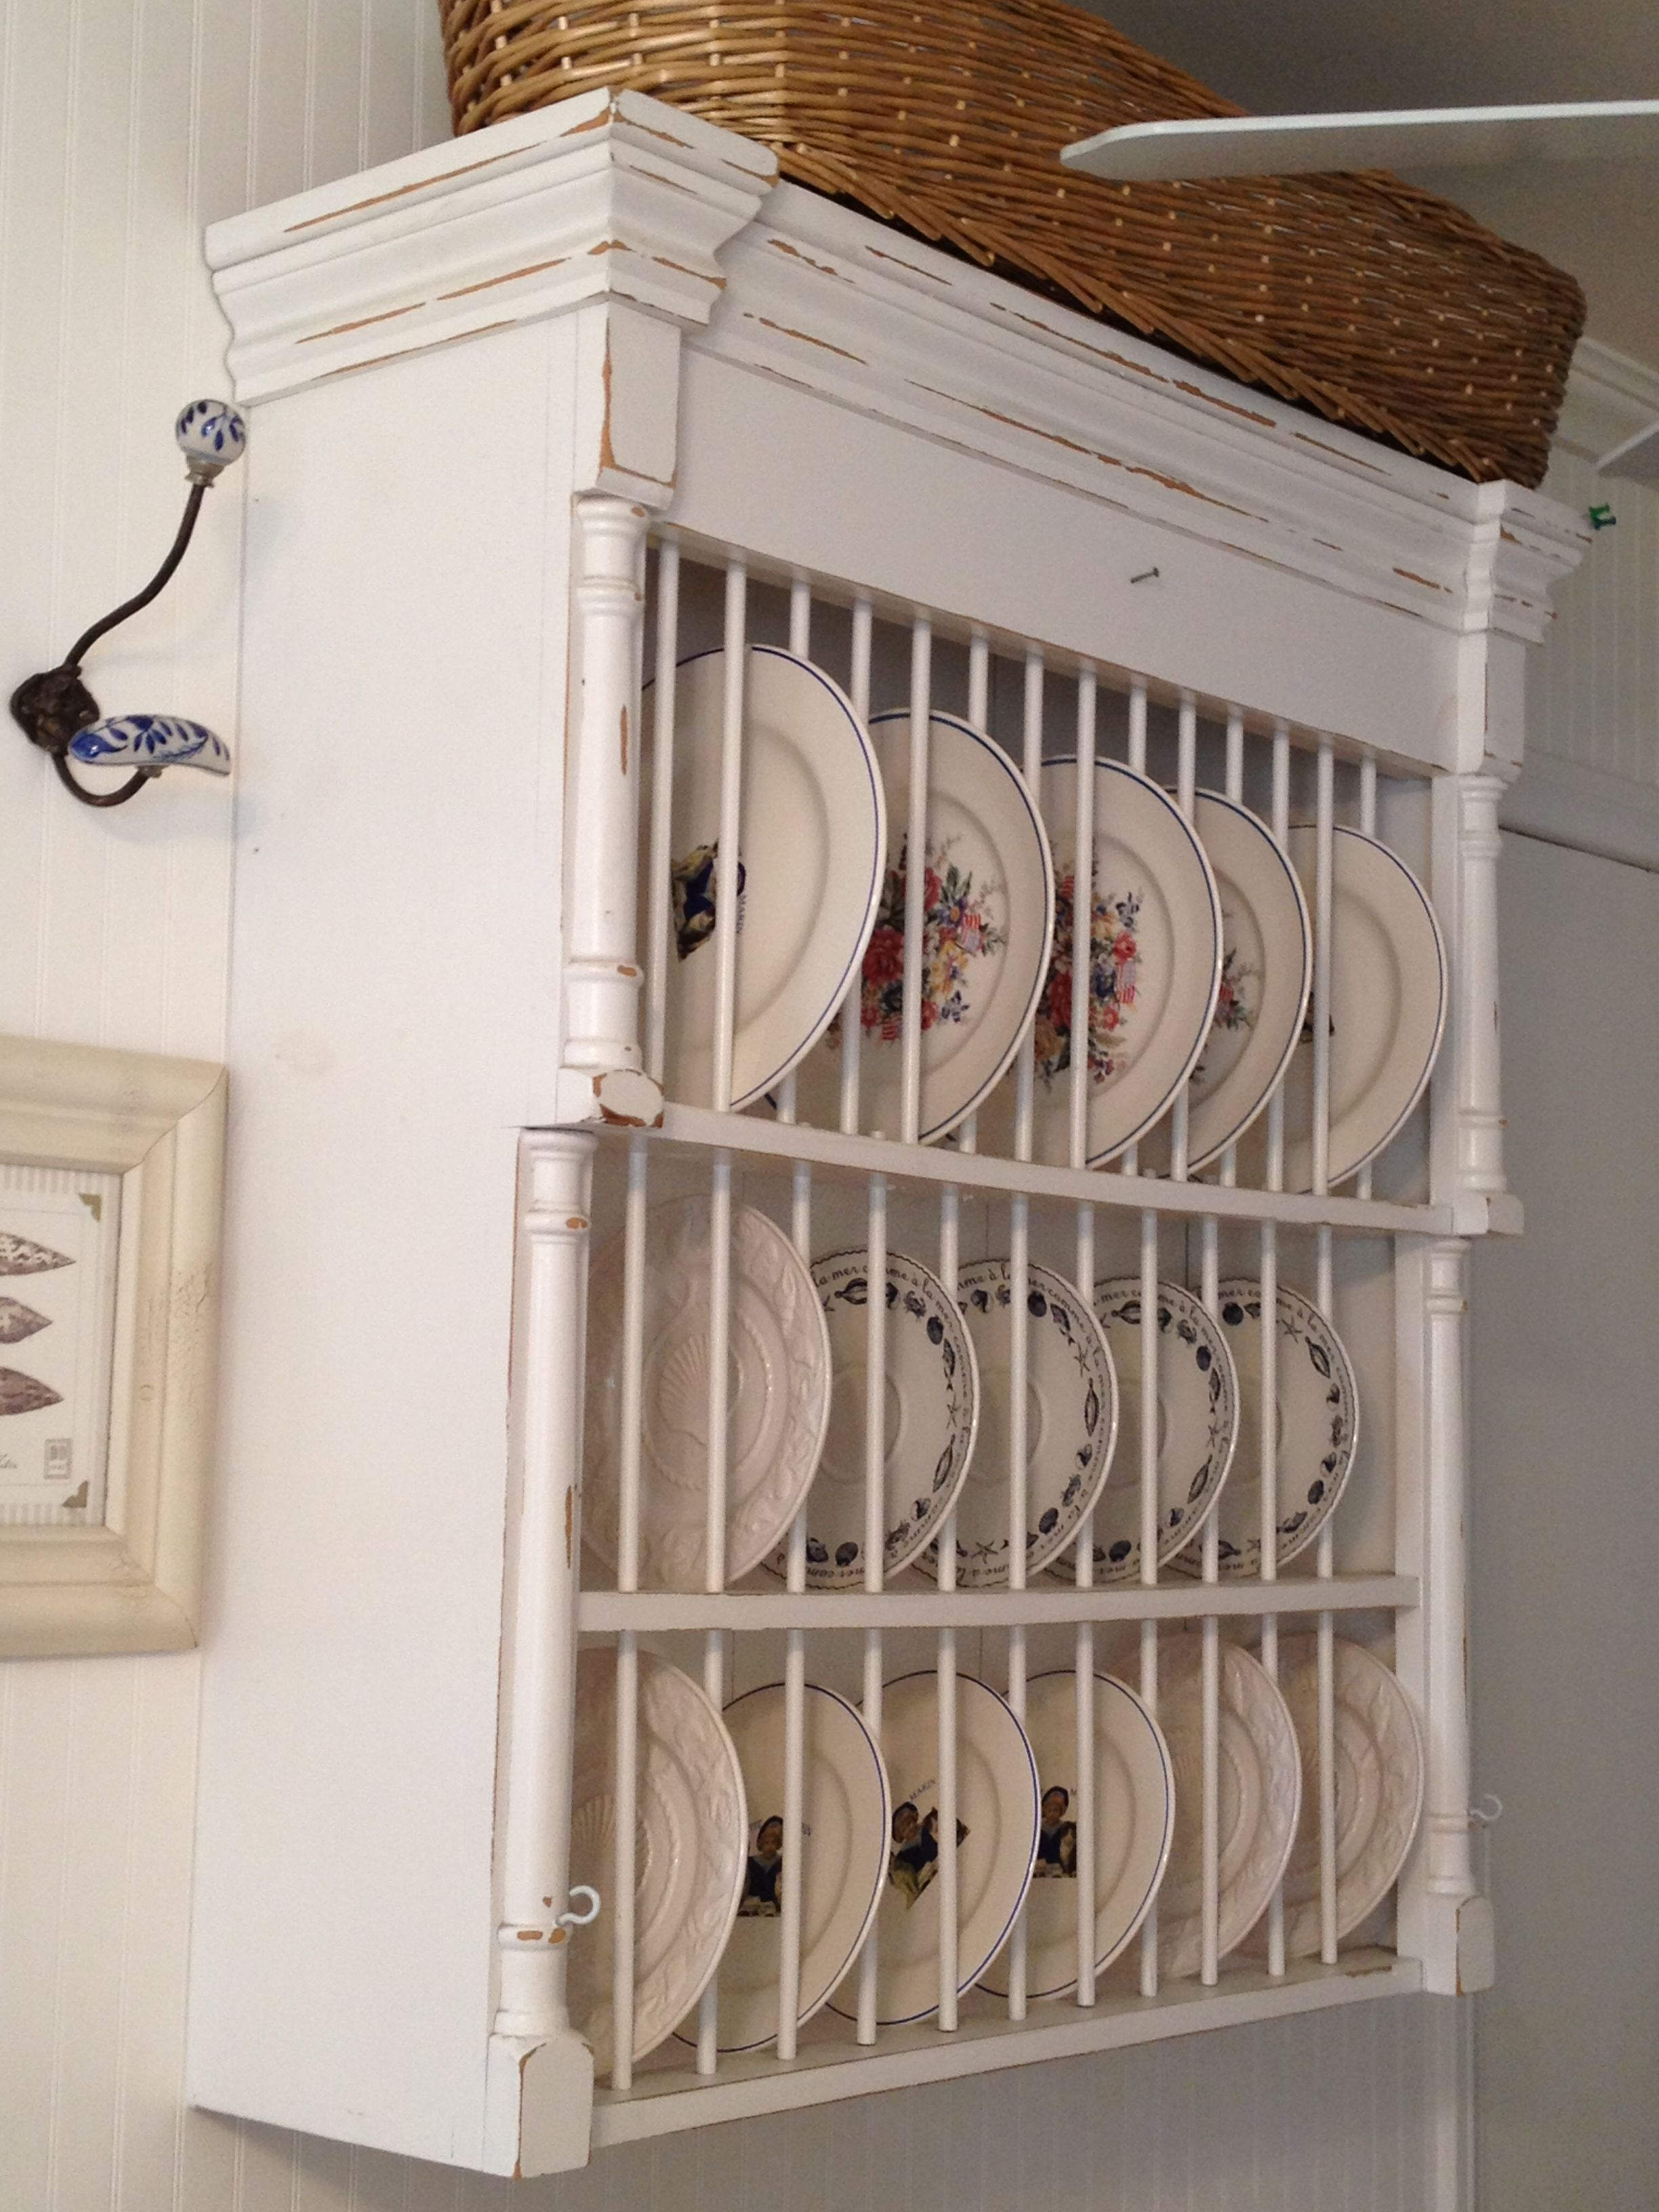 English Plate Rack Dining Room Victorian Plate Racks In Kitchen Plate Racks